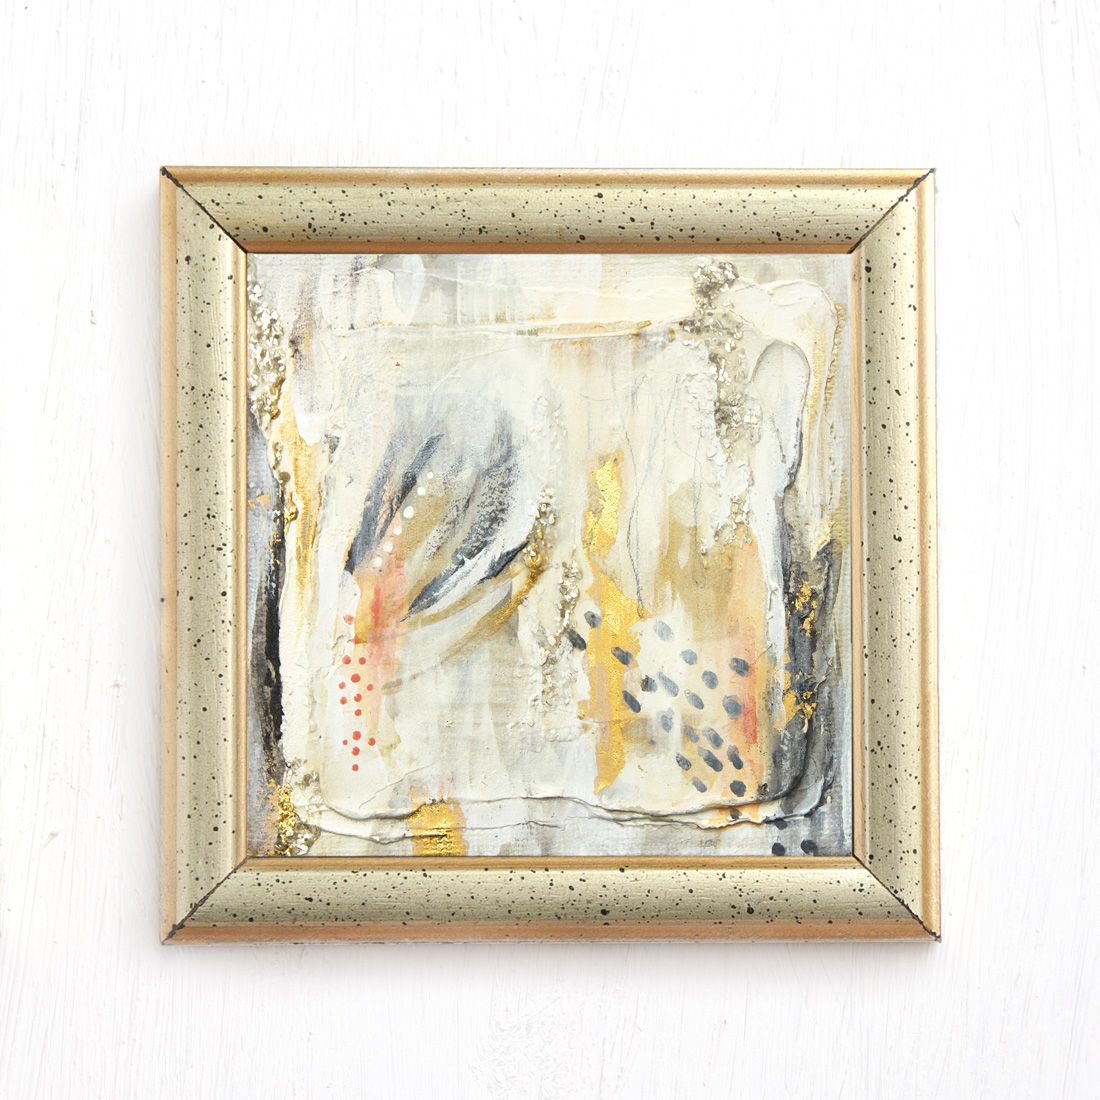 stardust abstract mixed medai painting salmon gold gray by jennifer lorton - framed.jpg